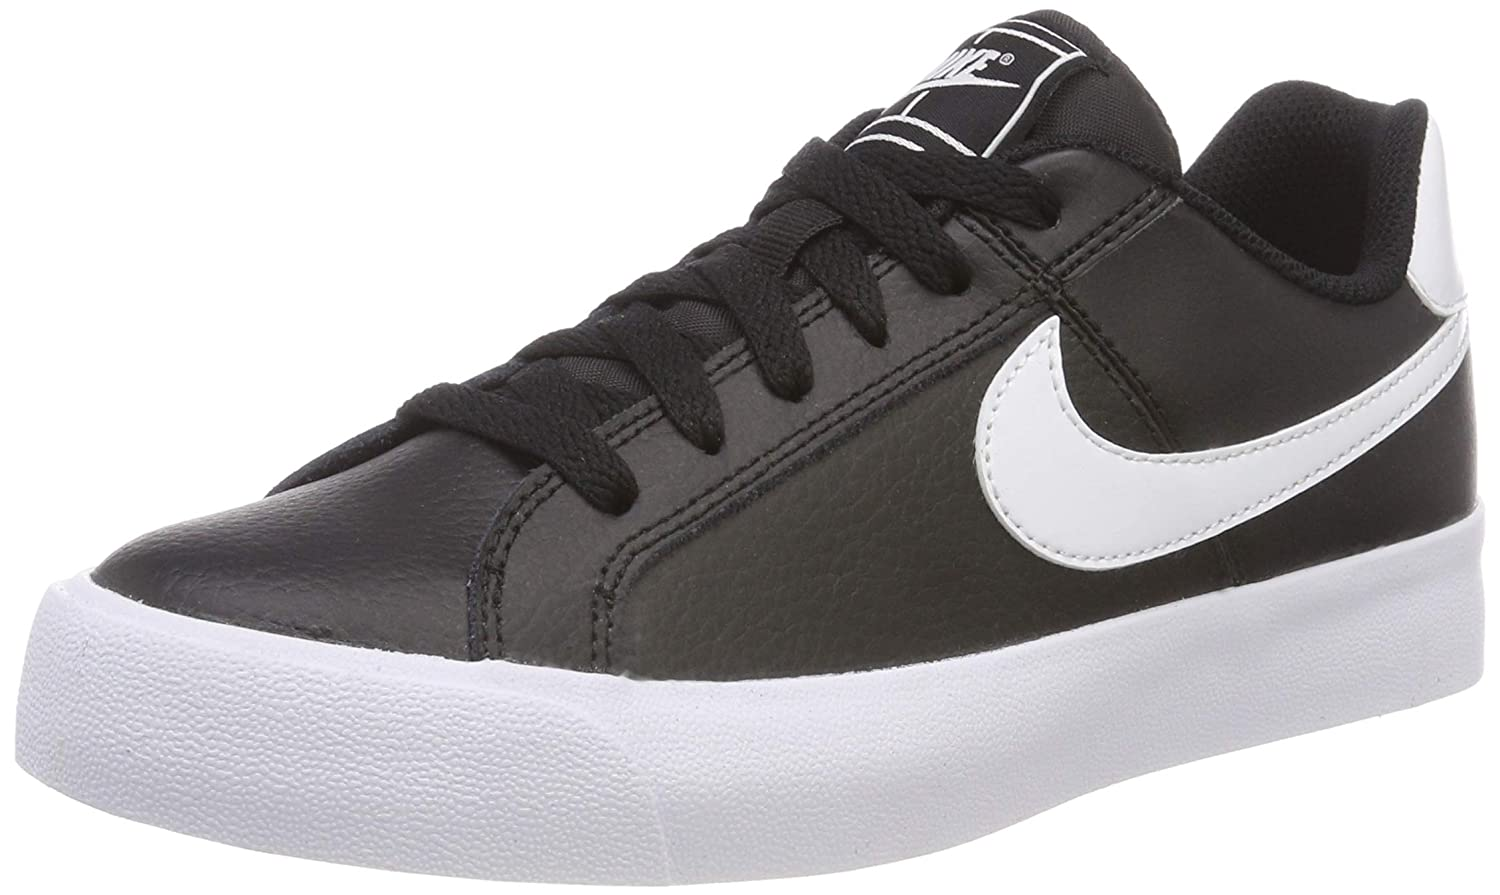 new arrivals 0985c 1e4a0 Amazon.com   Nike Women s Court Royale Ac Sneaker   Fashion Sneakers